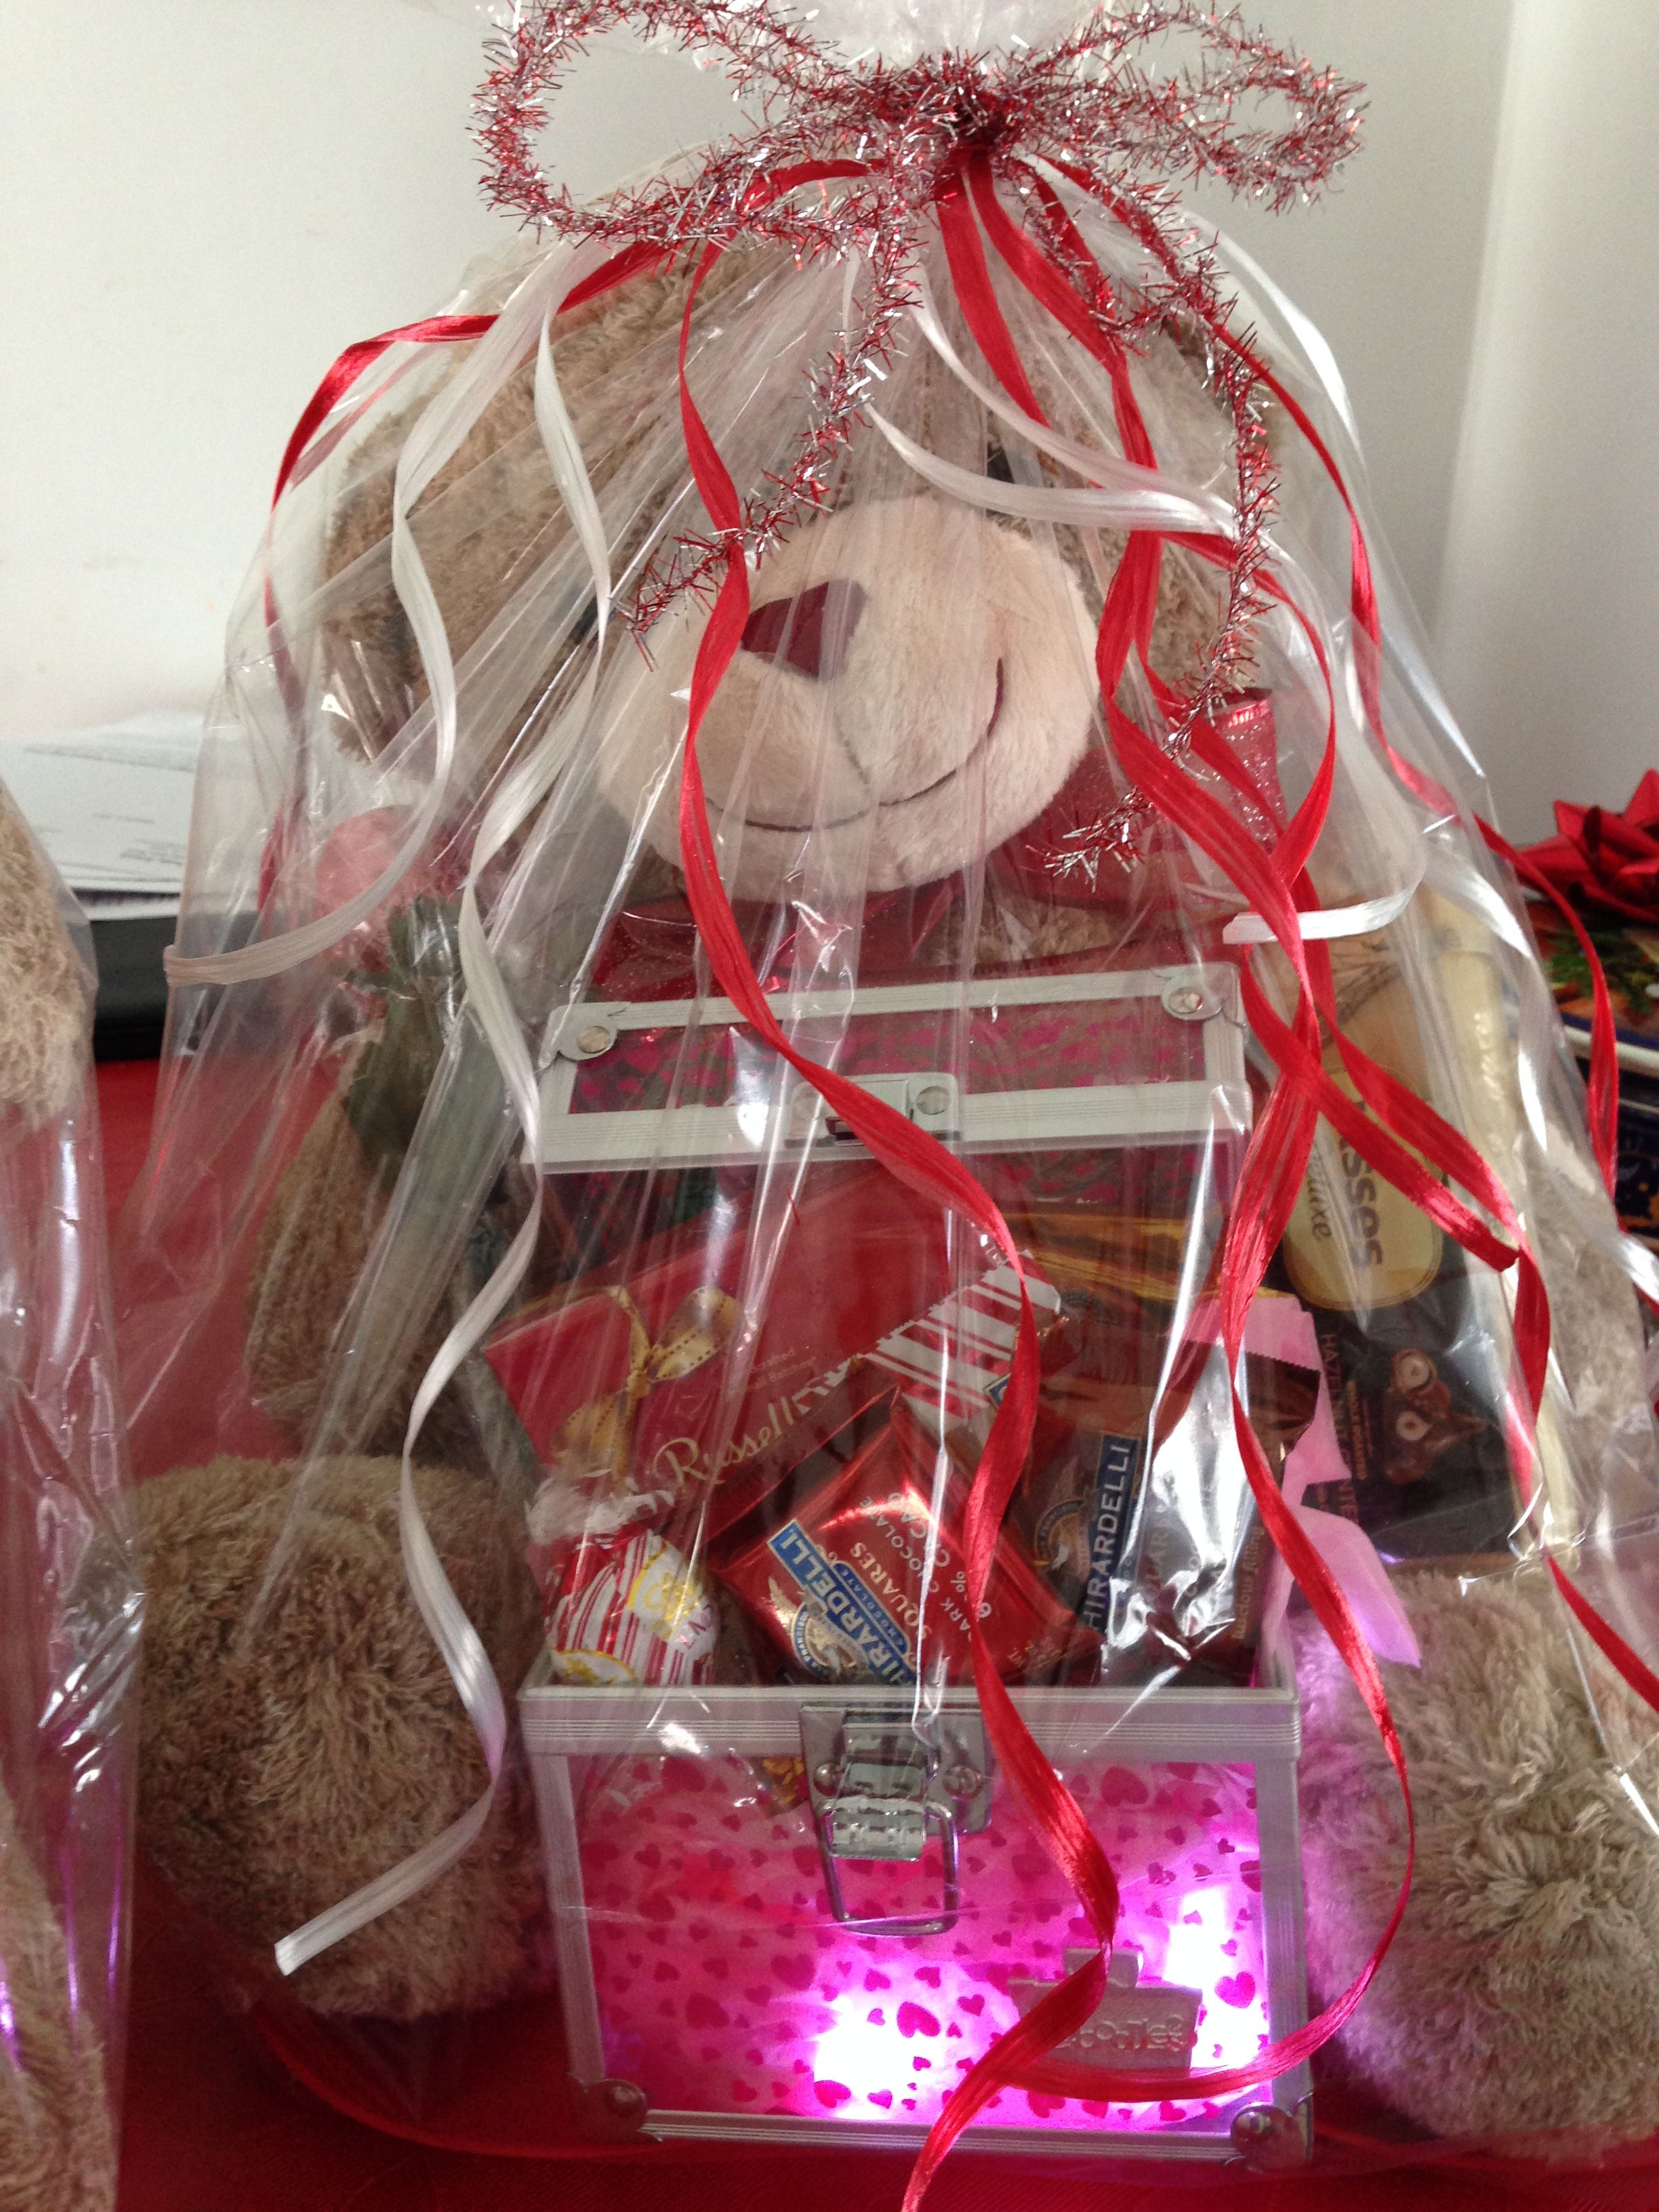 Happy Valentine's Day Teddy Bear Gift Baskets! Pick one or more. Only $40 each